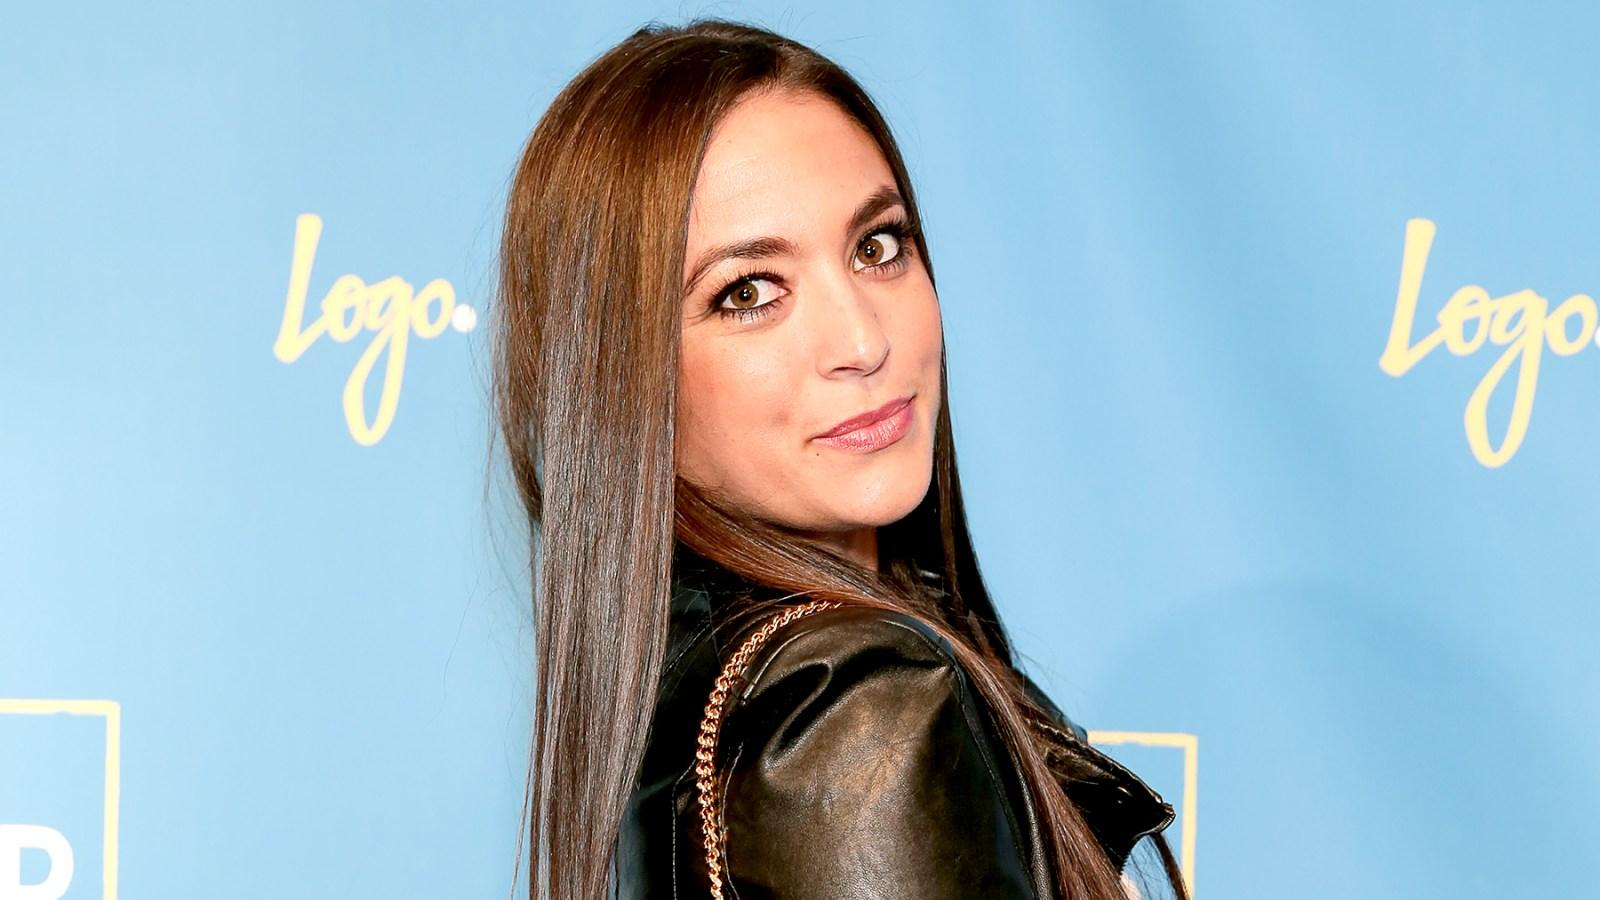 Sammi Giancola Planning On Returning To 'Jersey Shore?' - She's Still Close With The Female Cast Members!